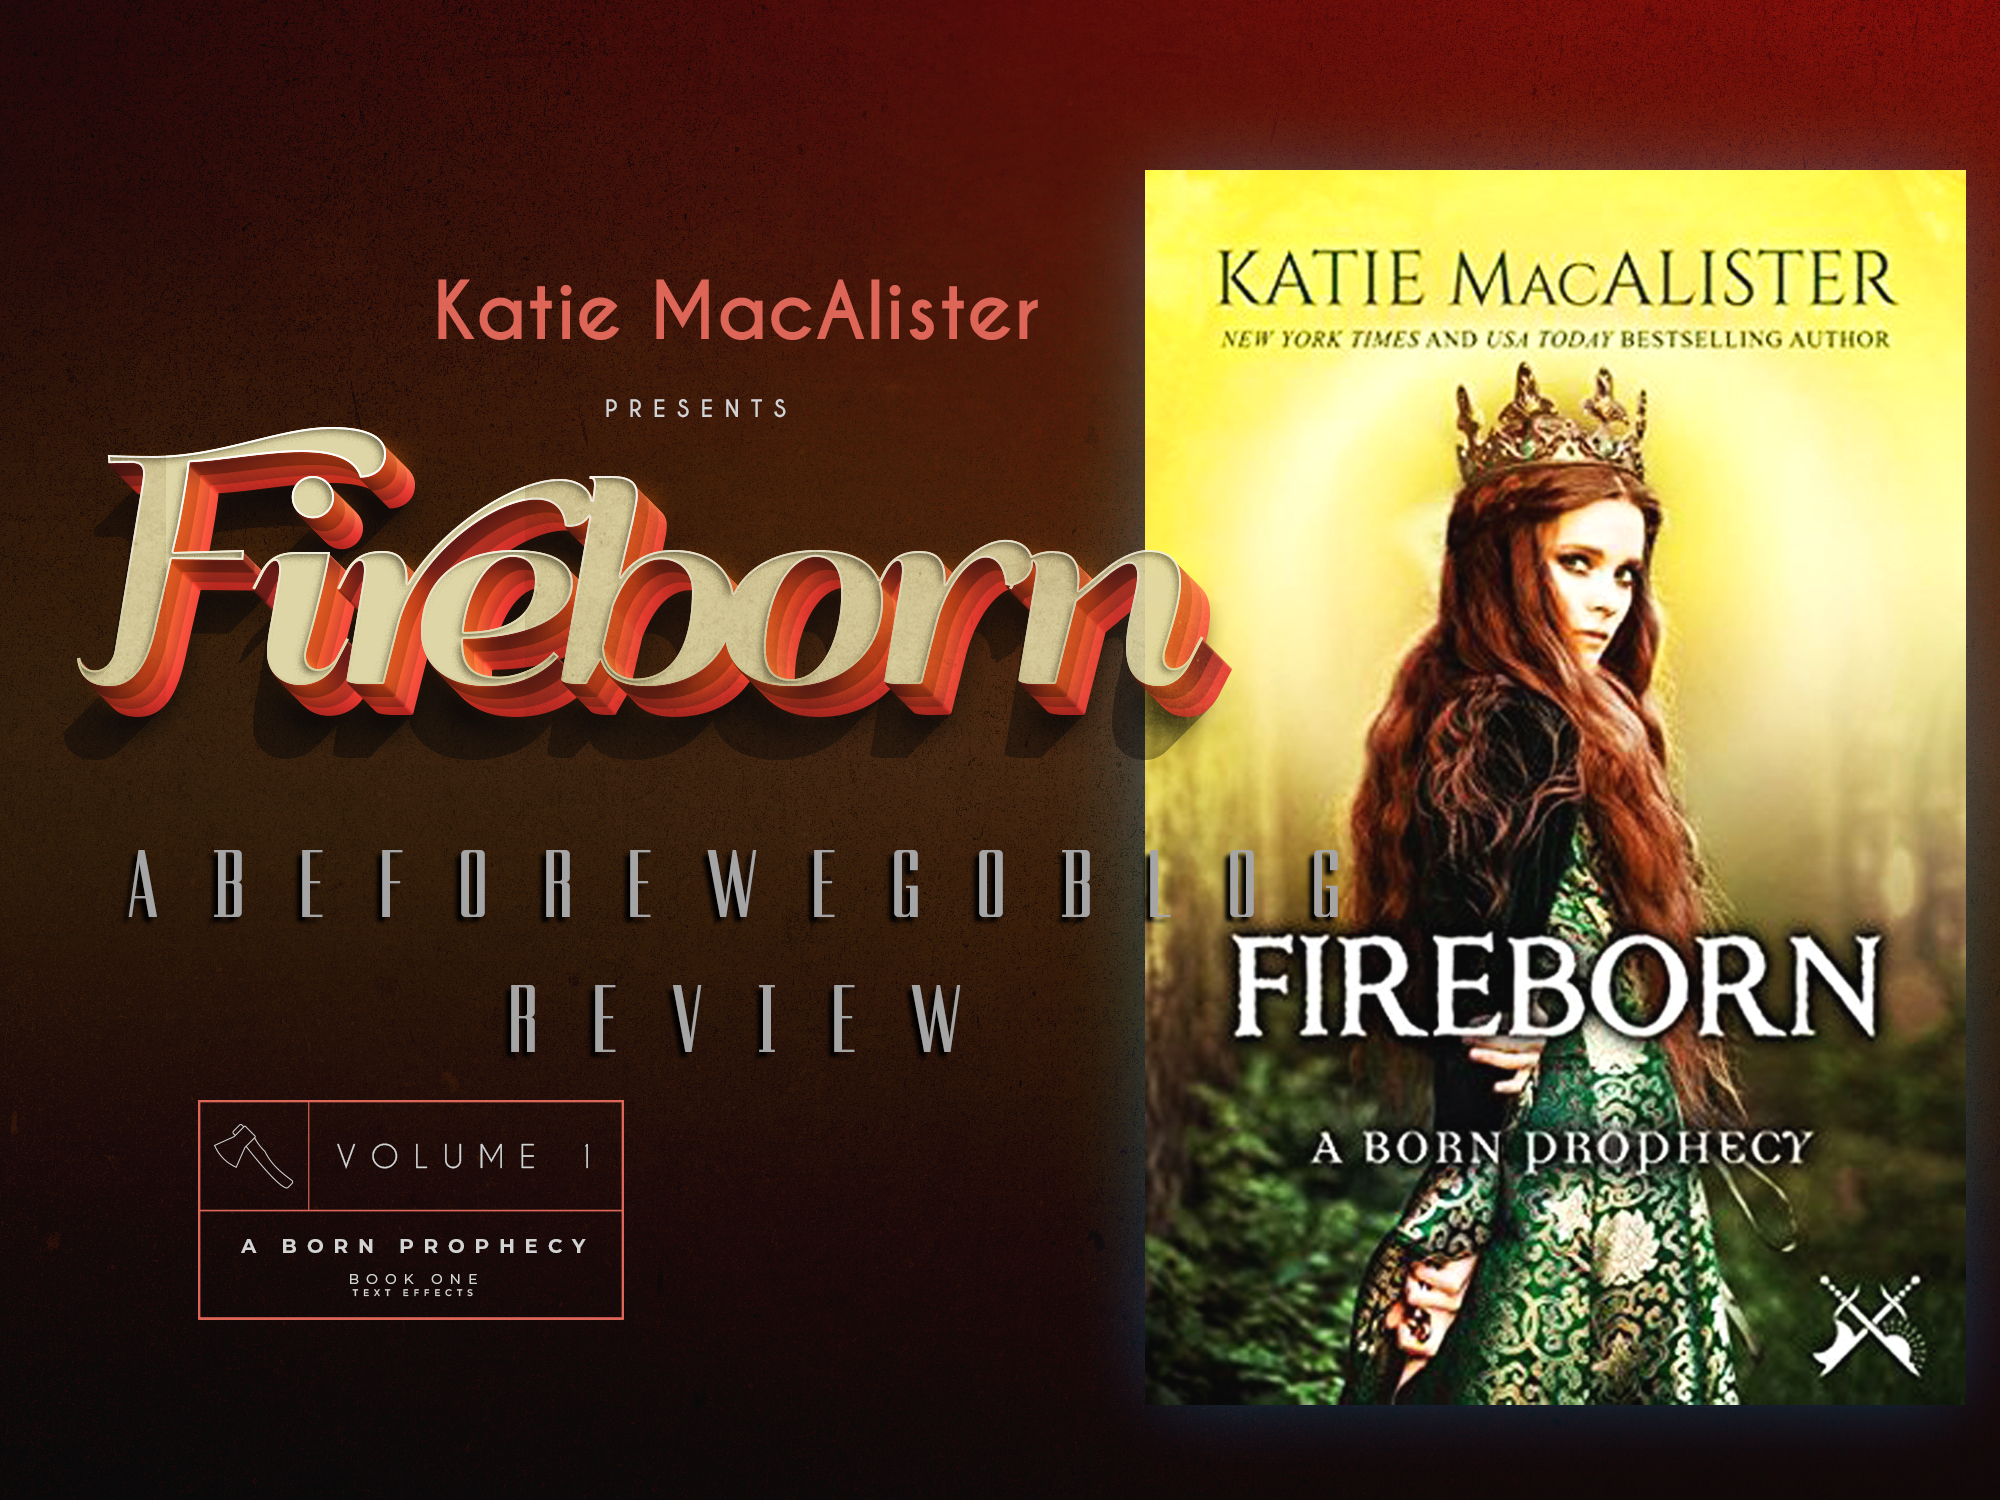 Review of Fireborn by Katie MacAlister